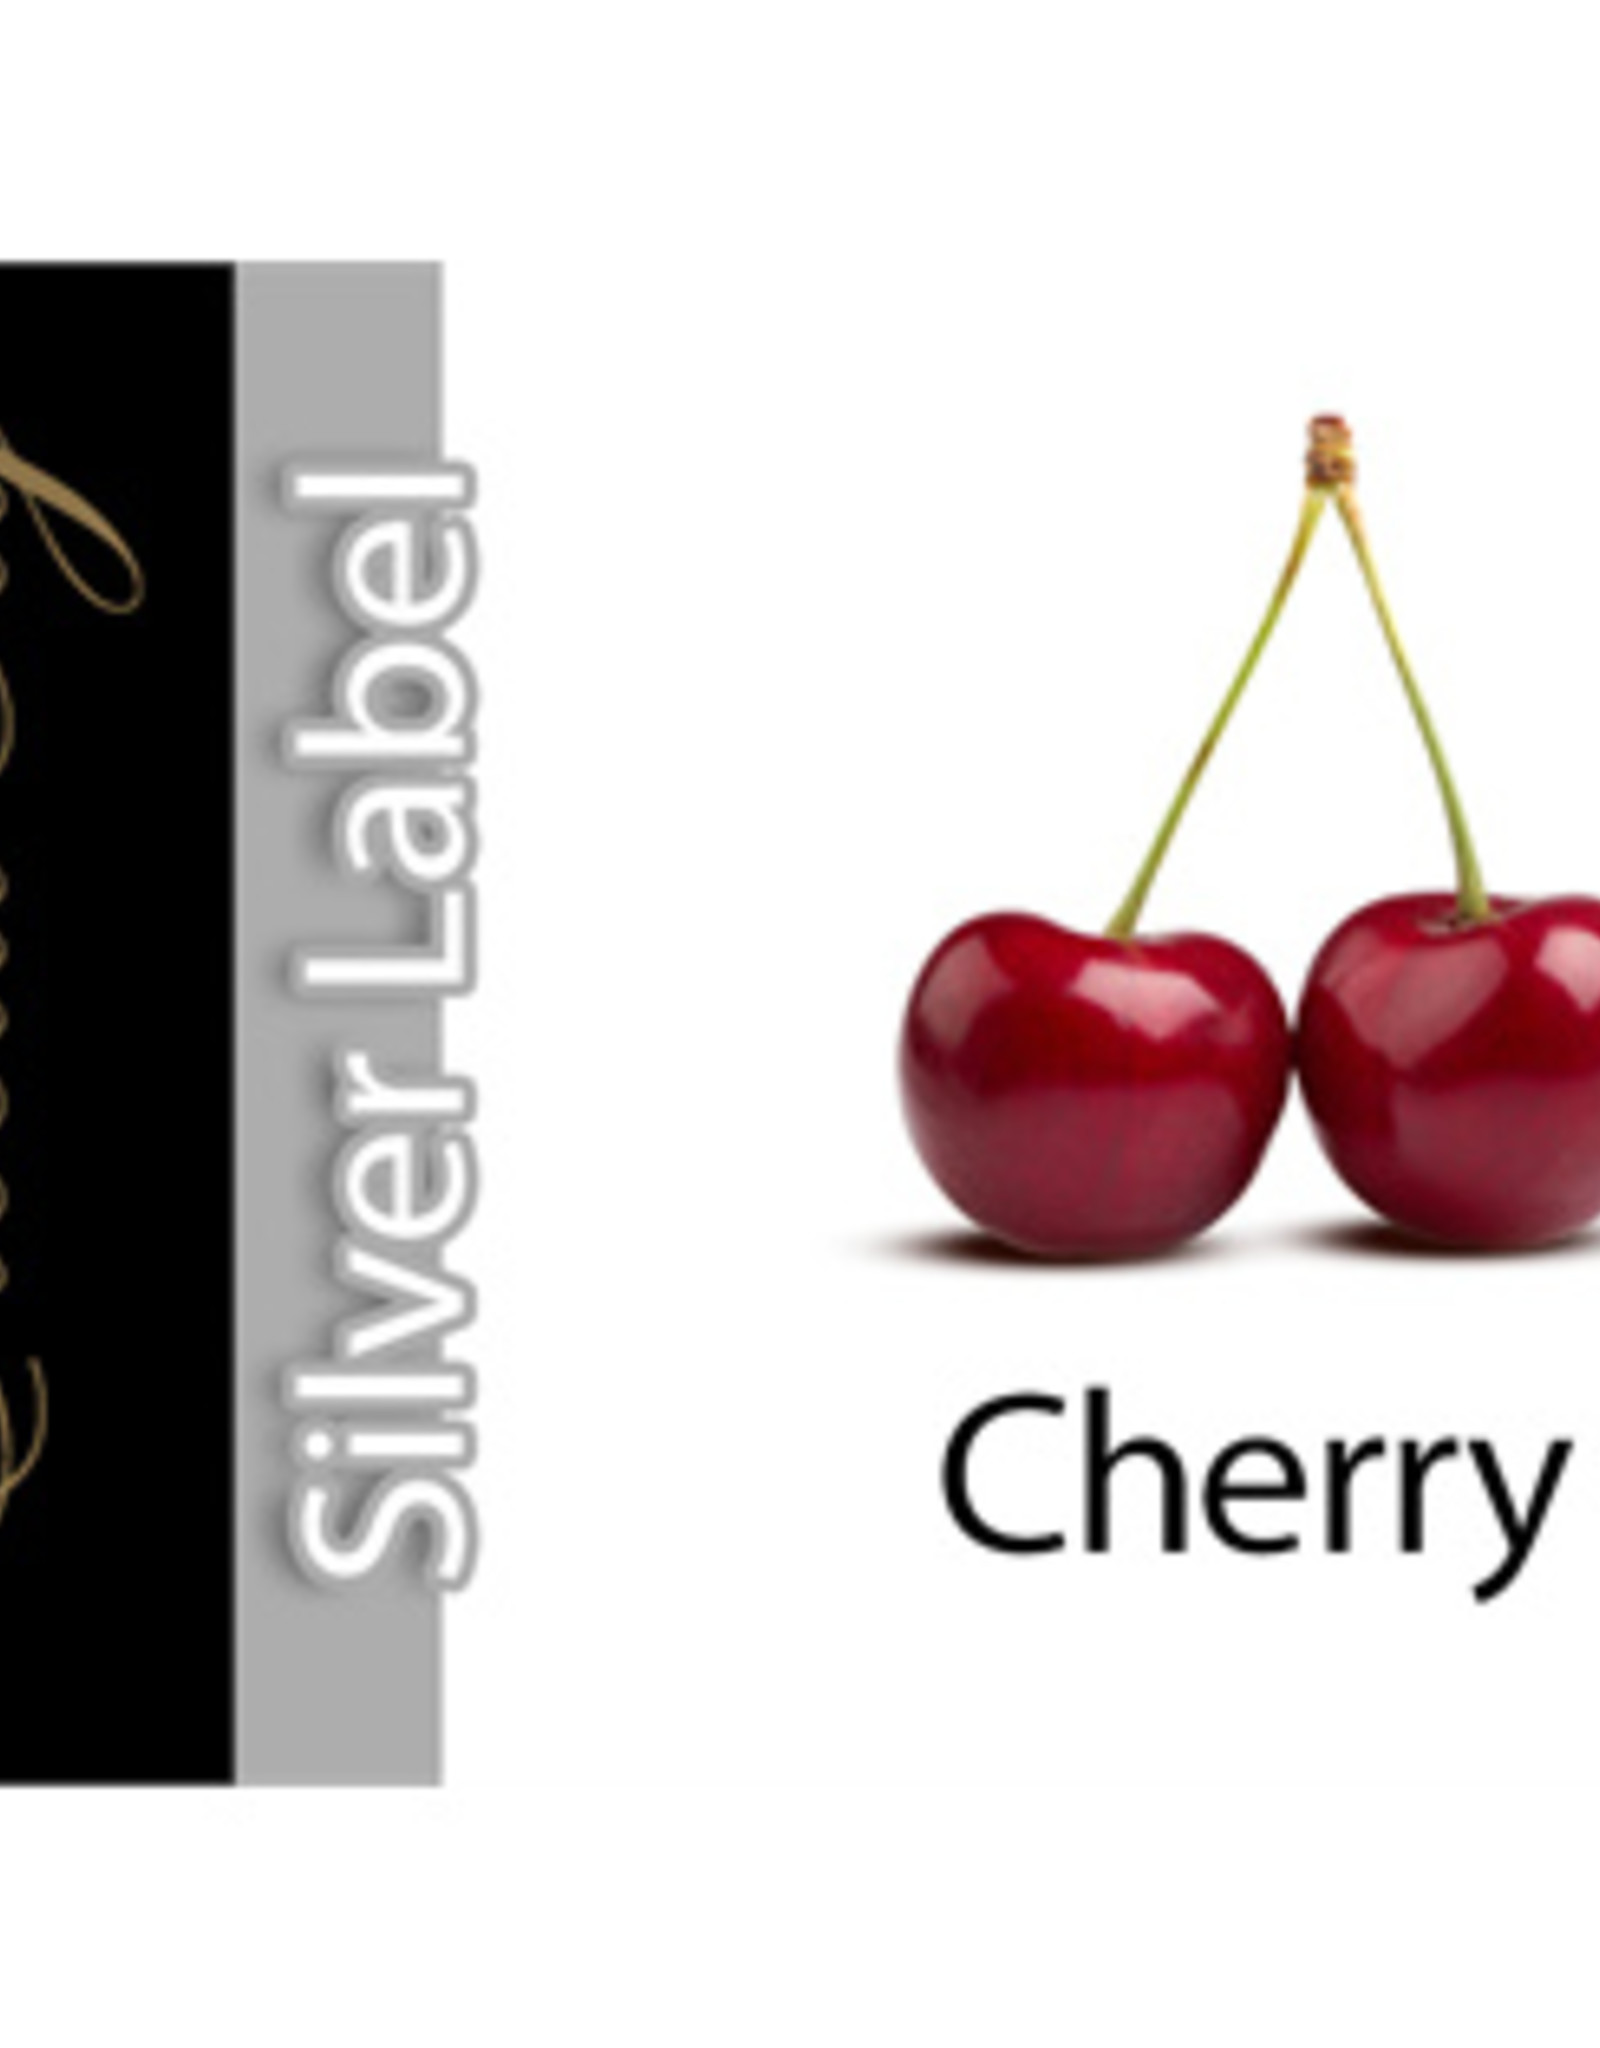 Exclucig Exclucig Silver Label E-liquid Cherry 12 mg Nicotine